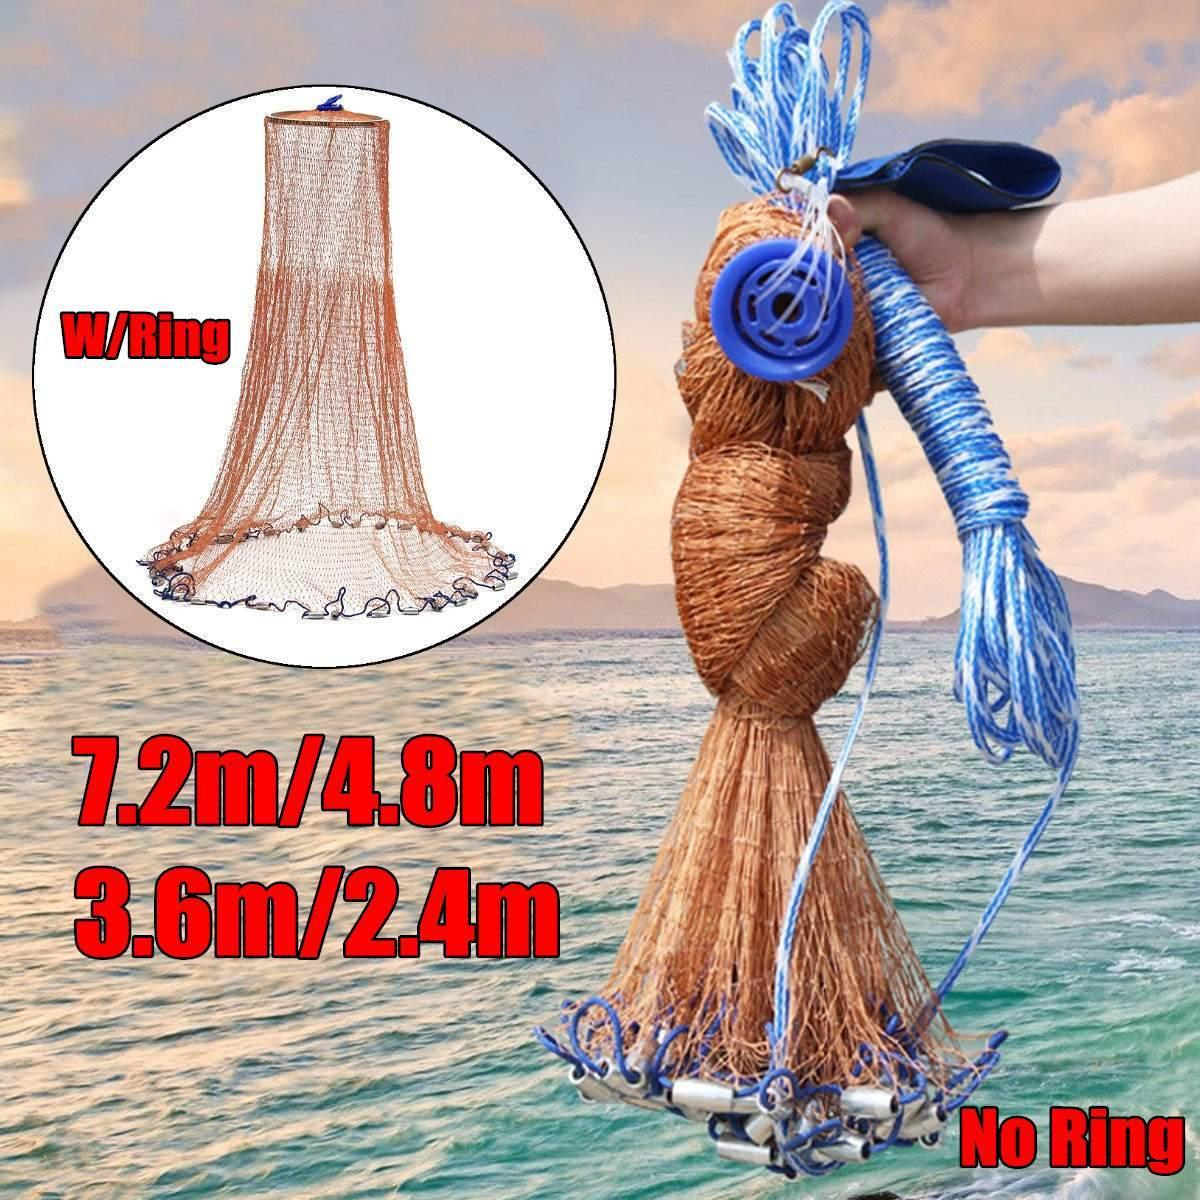 7-Style American Hand Cast Net Fish Finder Fishing With Flying Disc High Strength Fly Network 7.2/4.8/3.6/2.4M Throw Ring Large Nets Magic Lead Sinkers Tyre Nylon Bait Traps